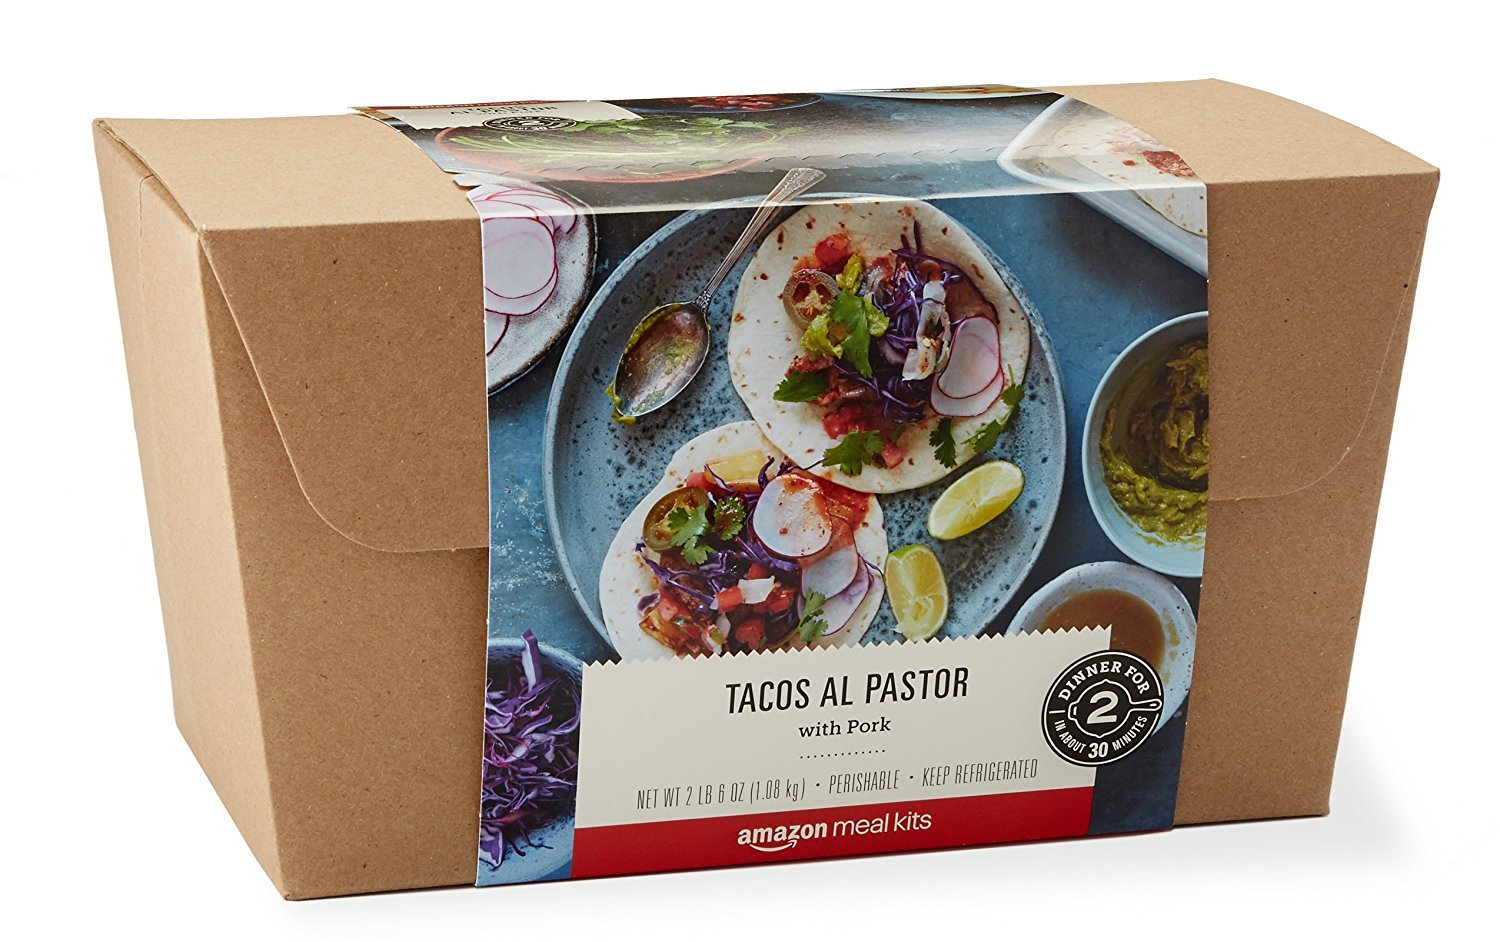 Amazon files for meal kit trademark